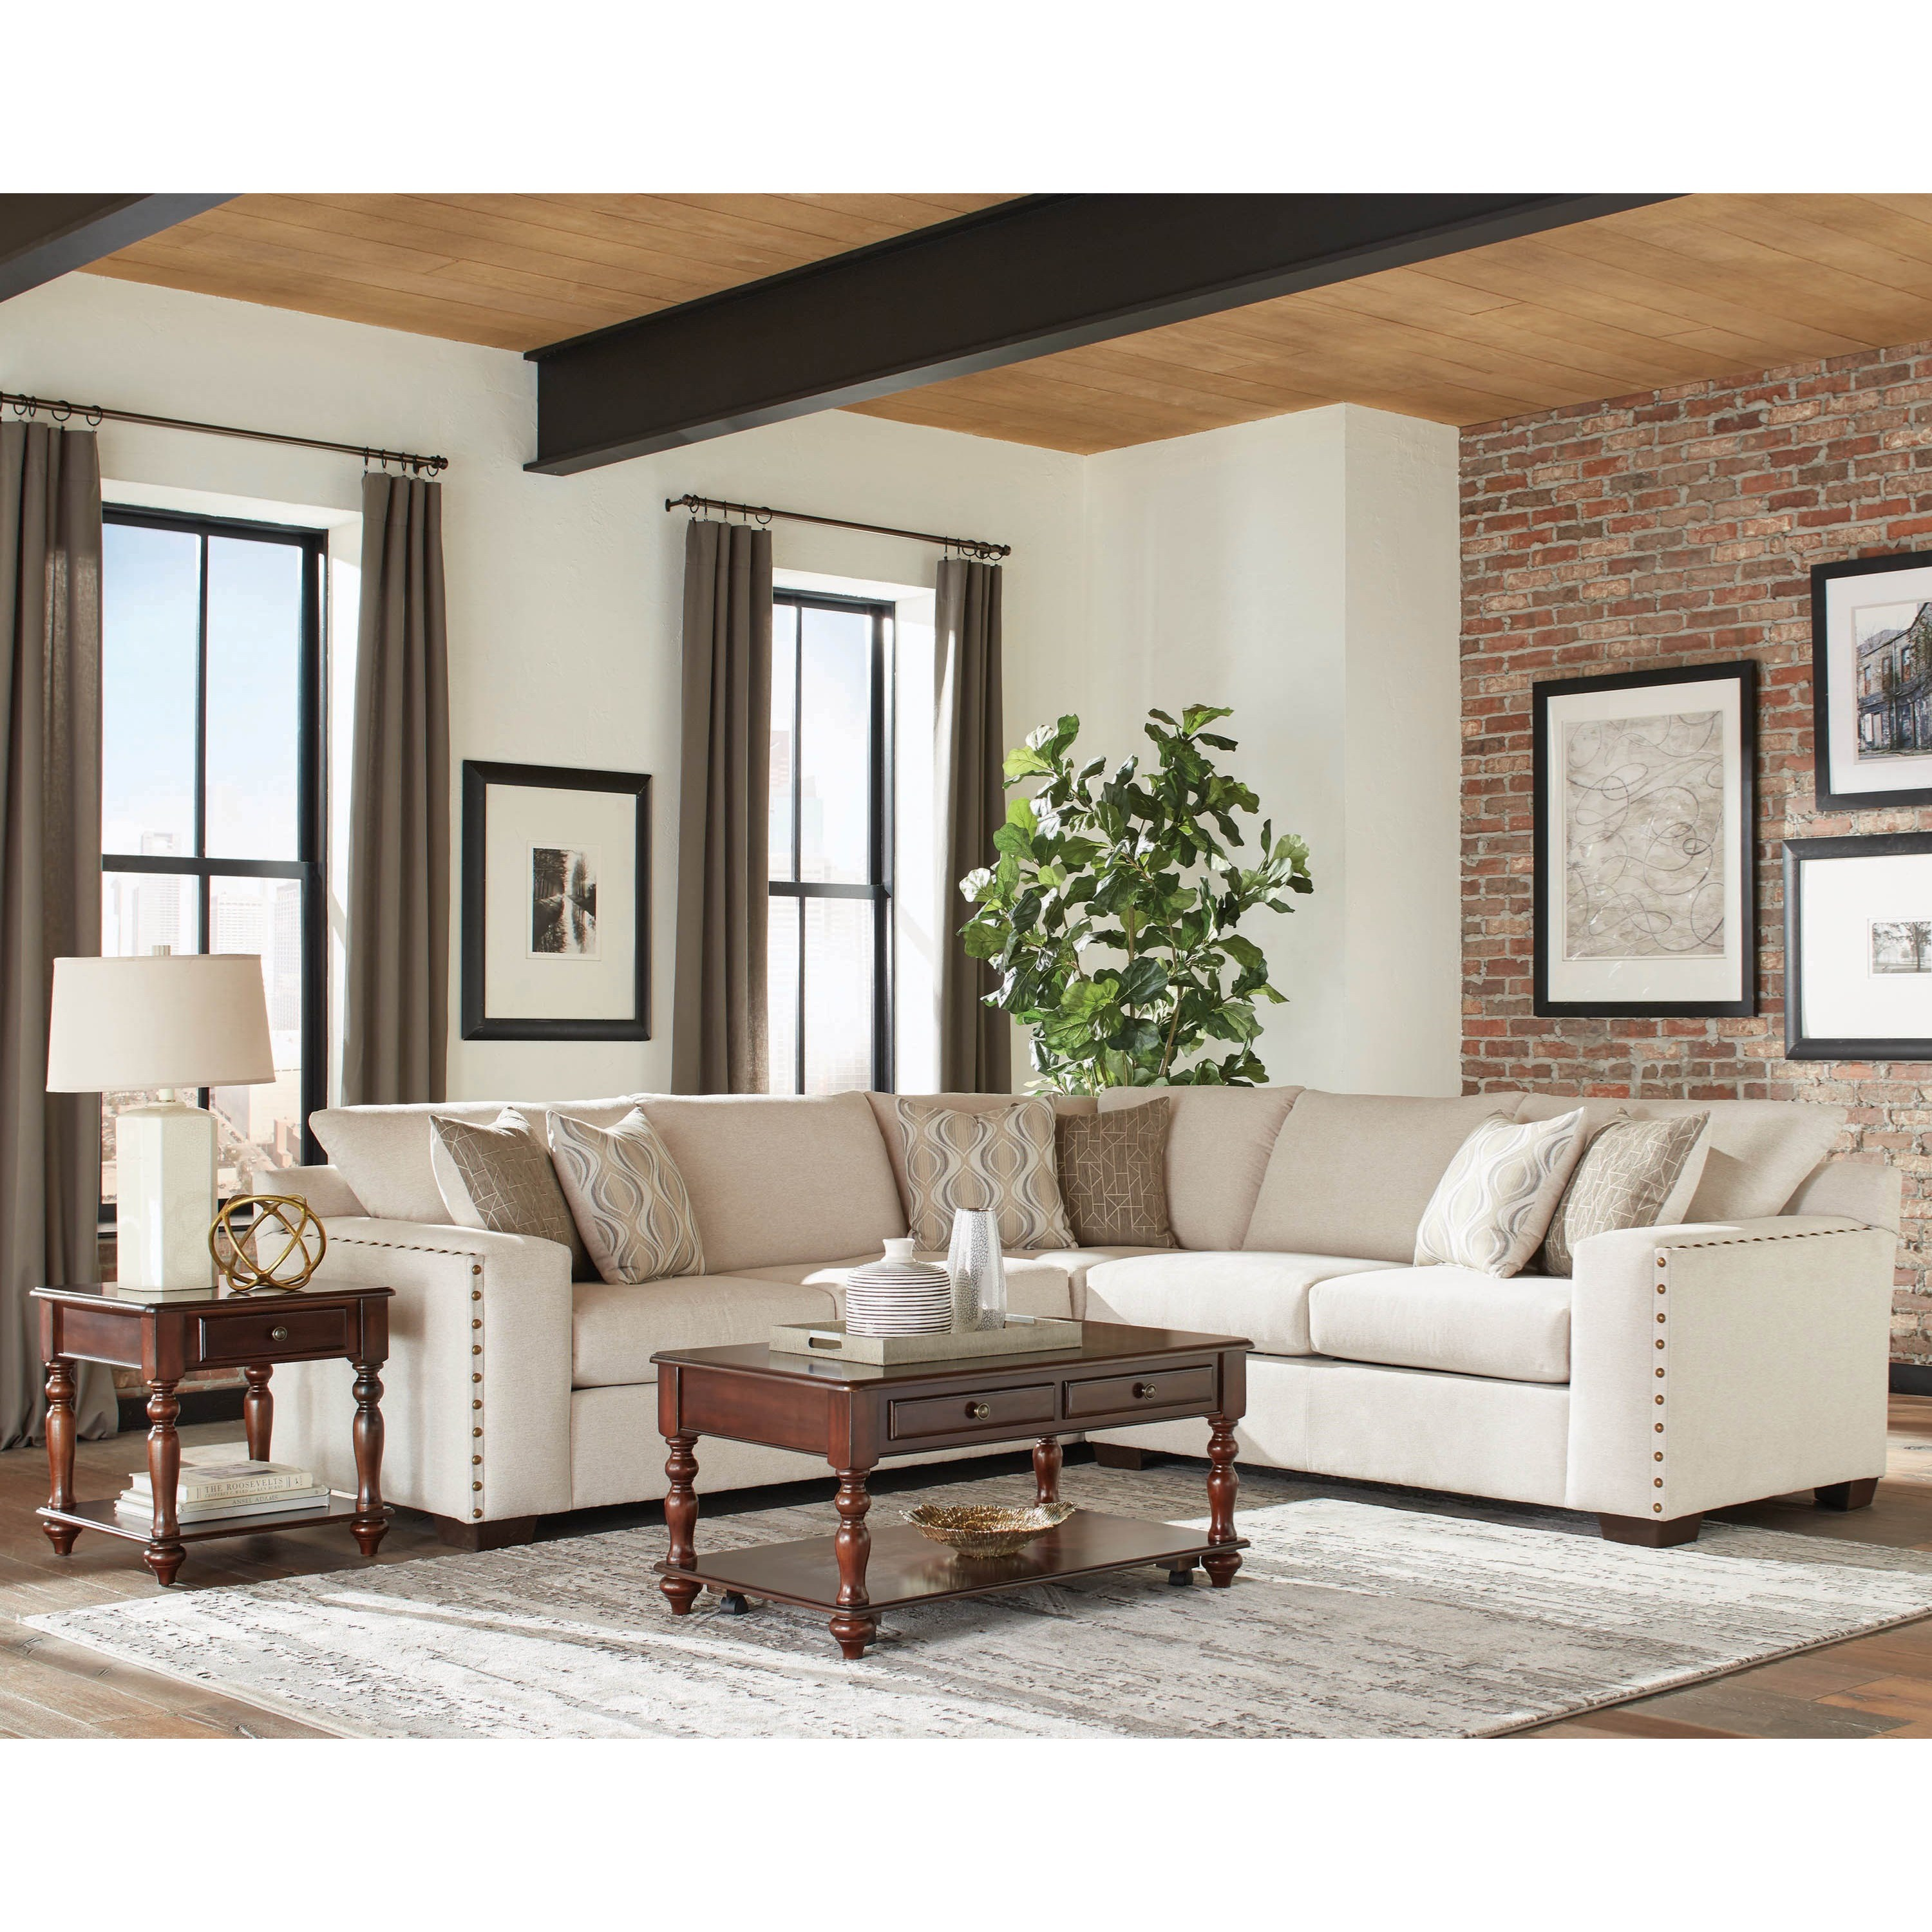 Aria Sectional Sofa by Coaster at Furniture Superstore - Rochester, MN